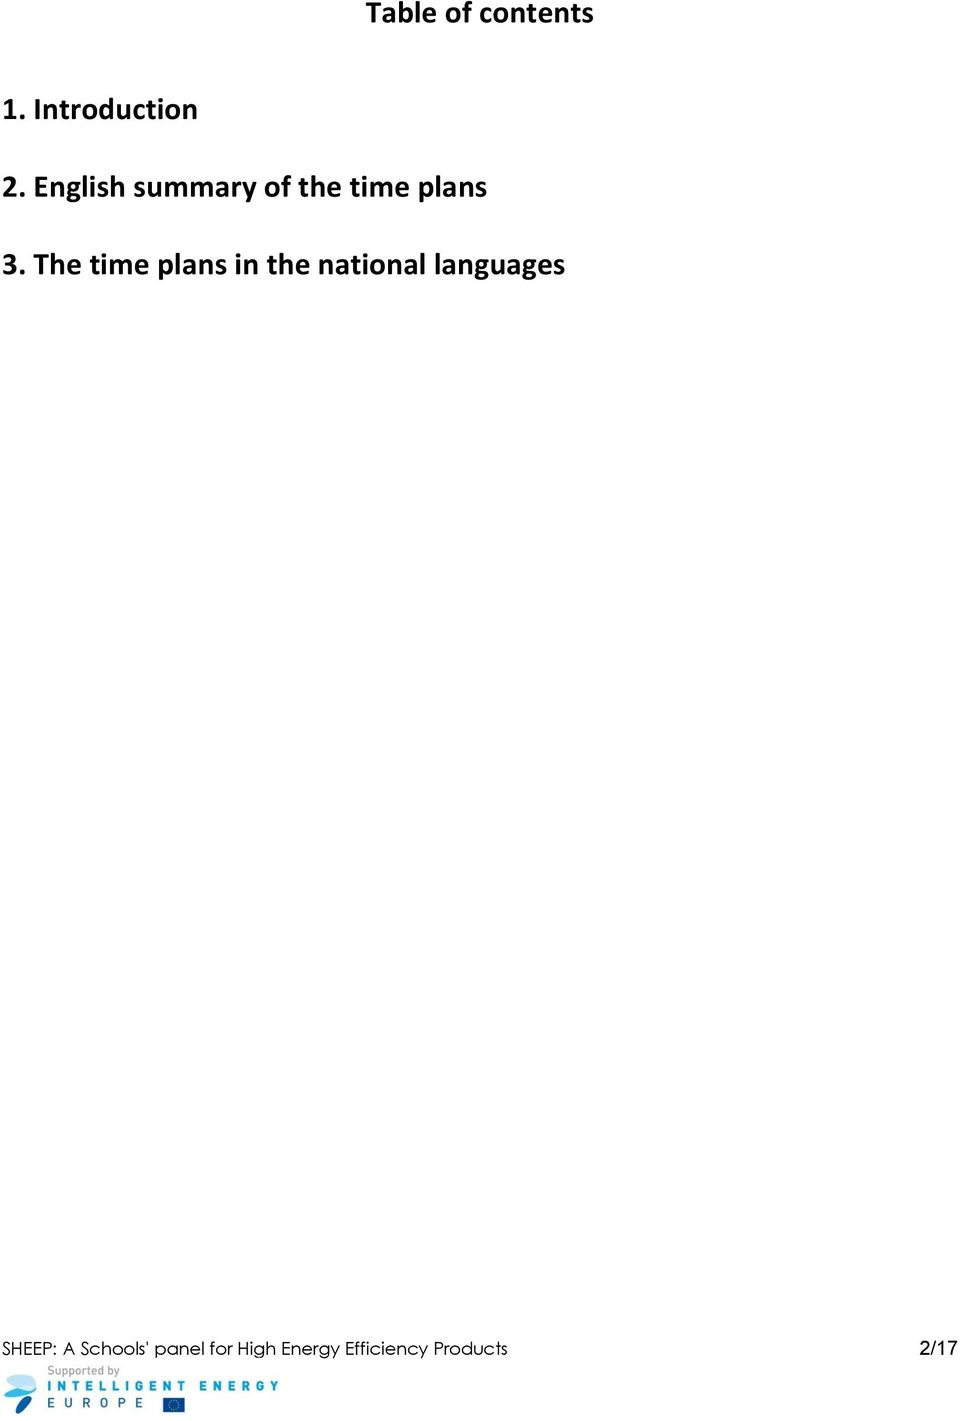 The time plans in the national languages